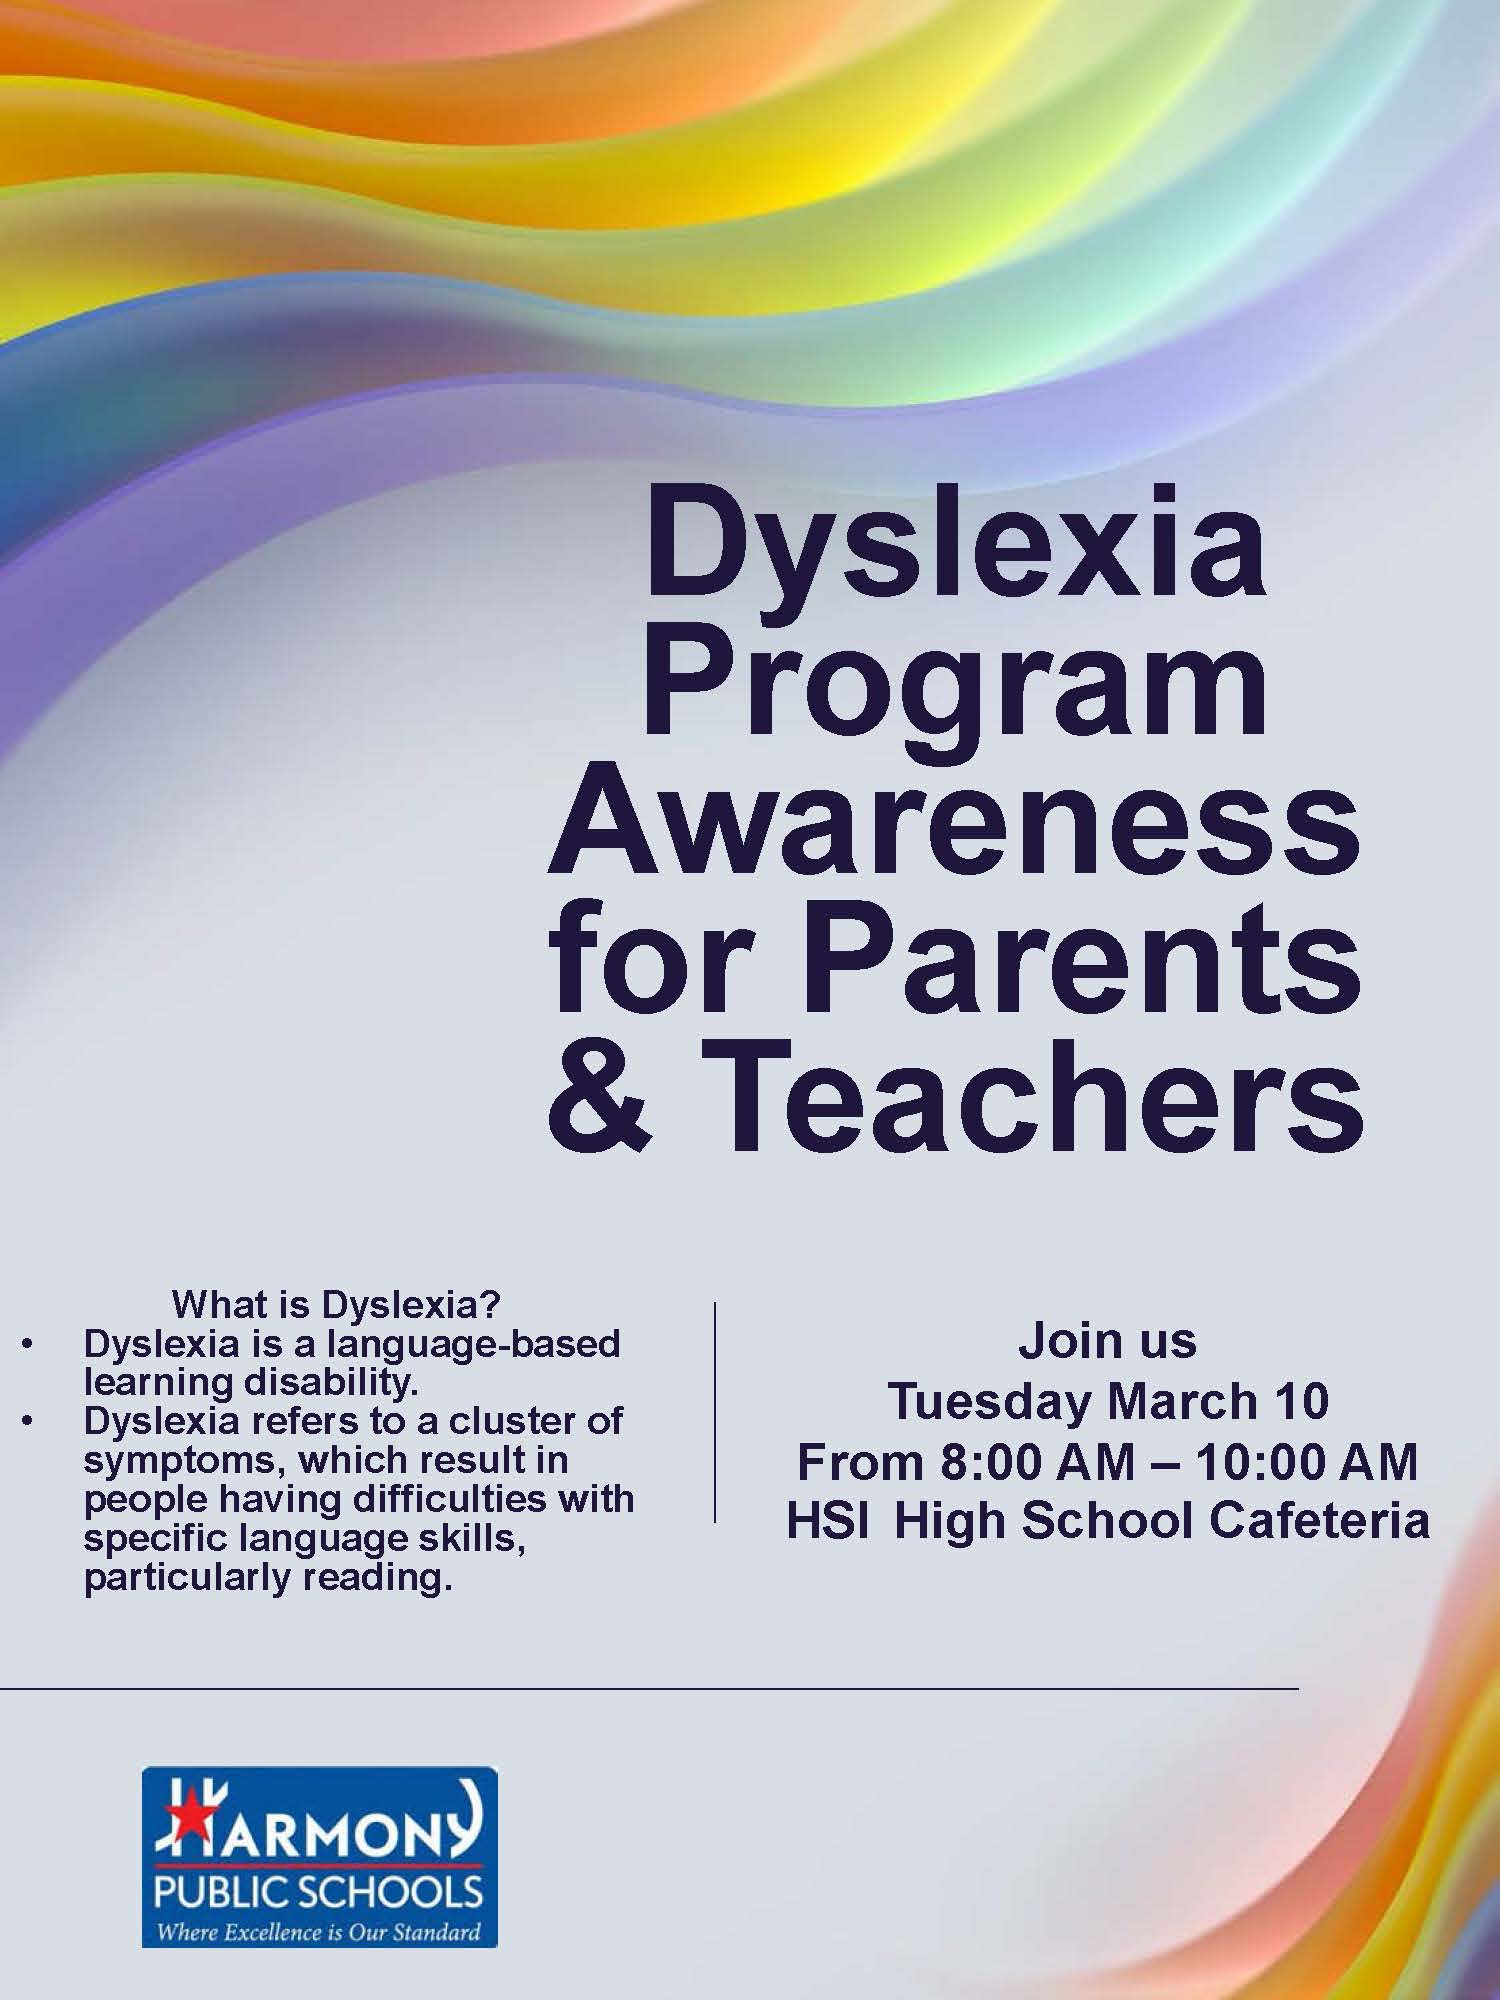 An image of the Dyslexia Program Awareness flyer on Tuesday, March 10th, 2020, from 8-10 AM in the HSI High School Cafeteria.